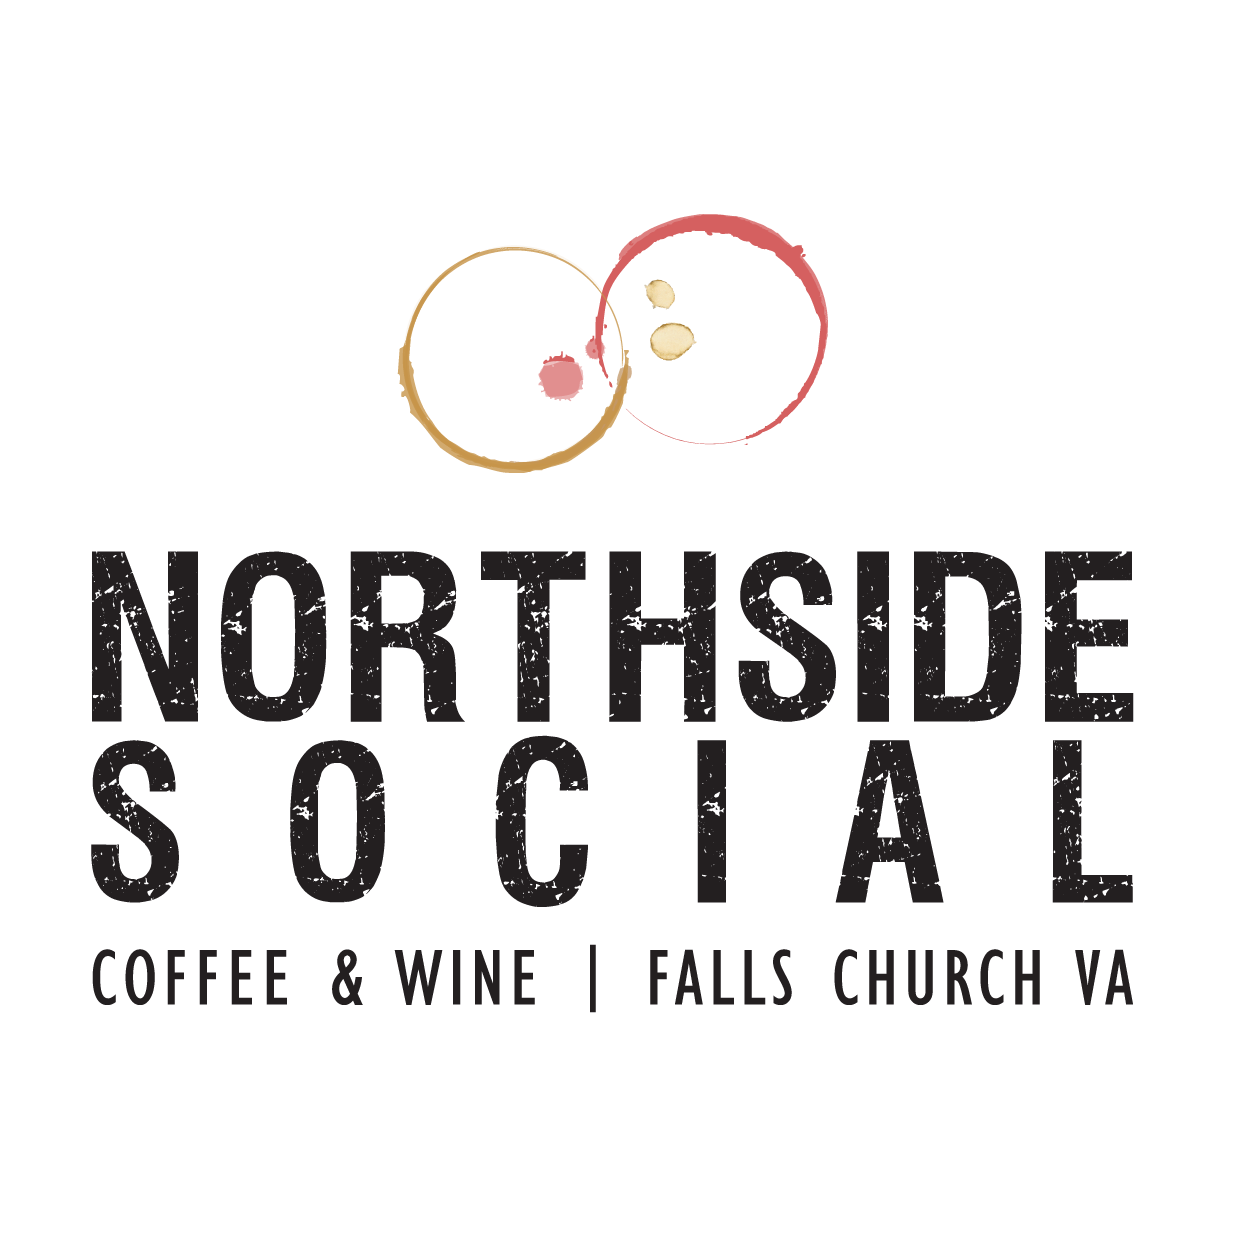 Northside Social_Falls Church.png